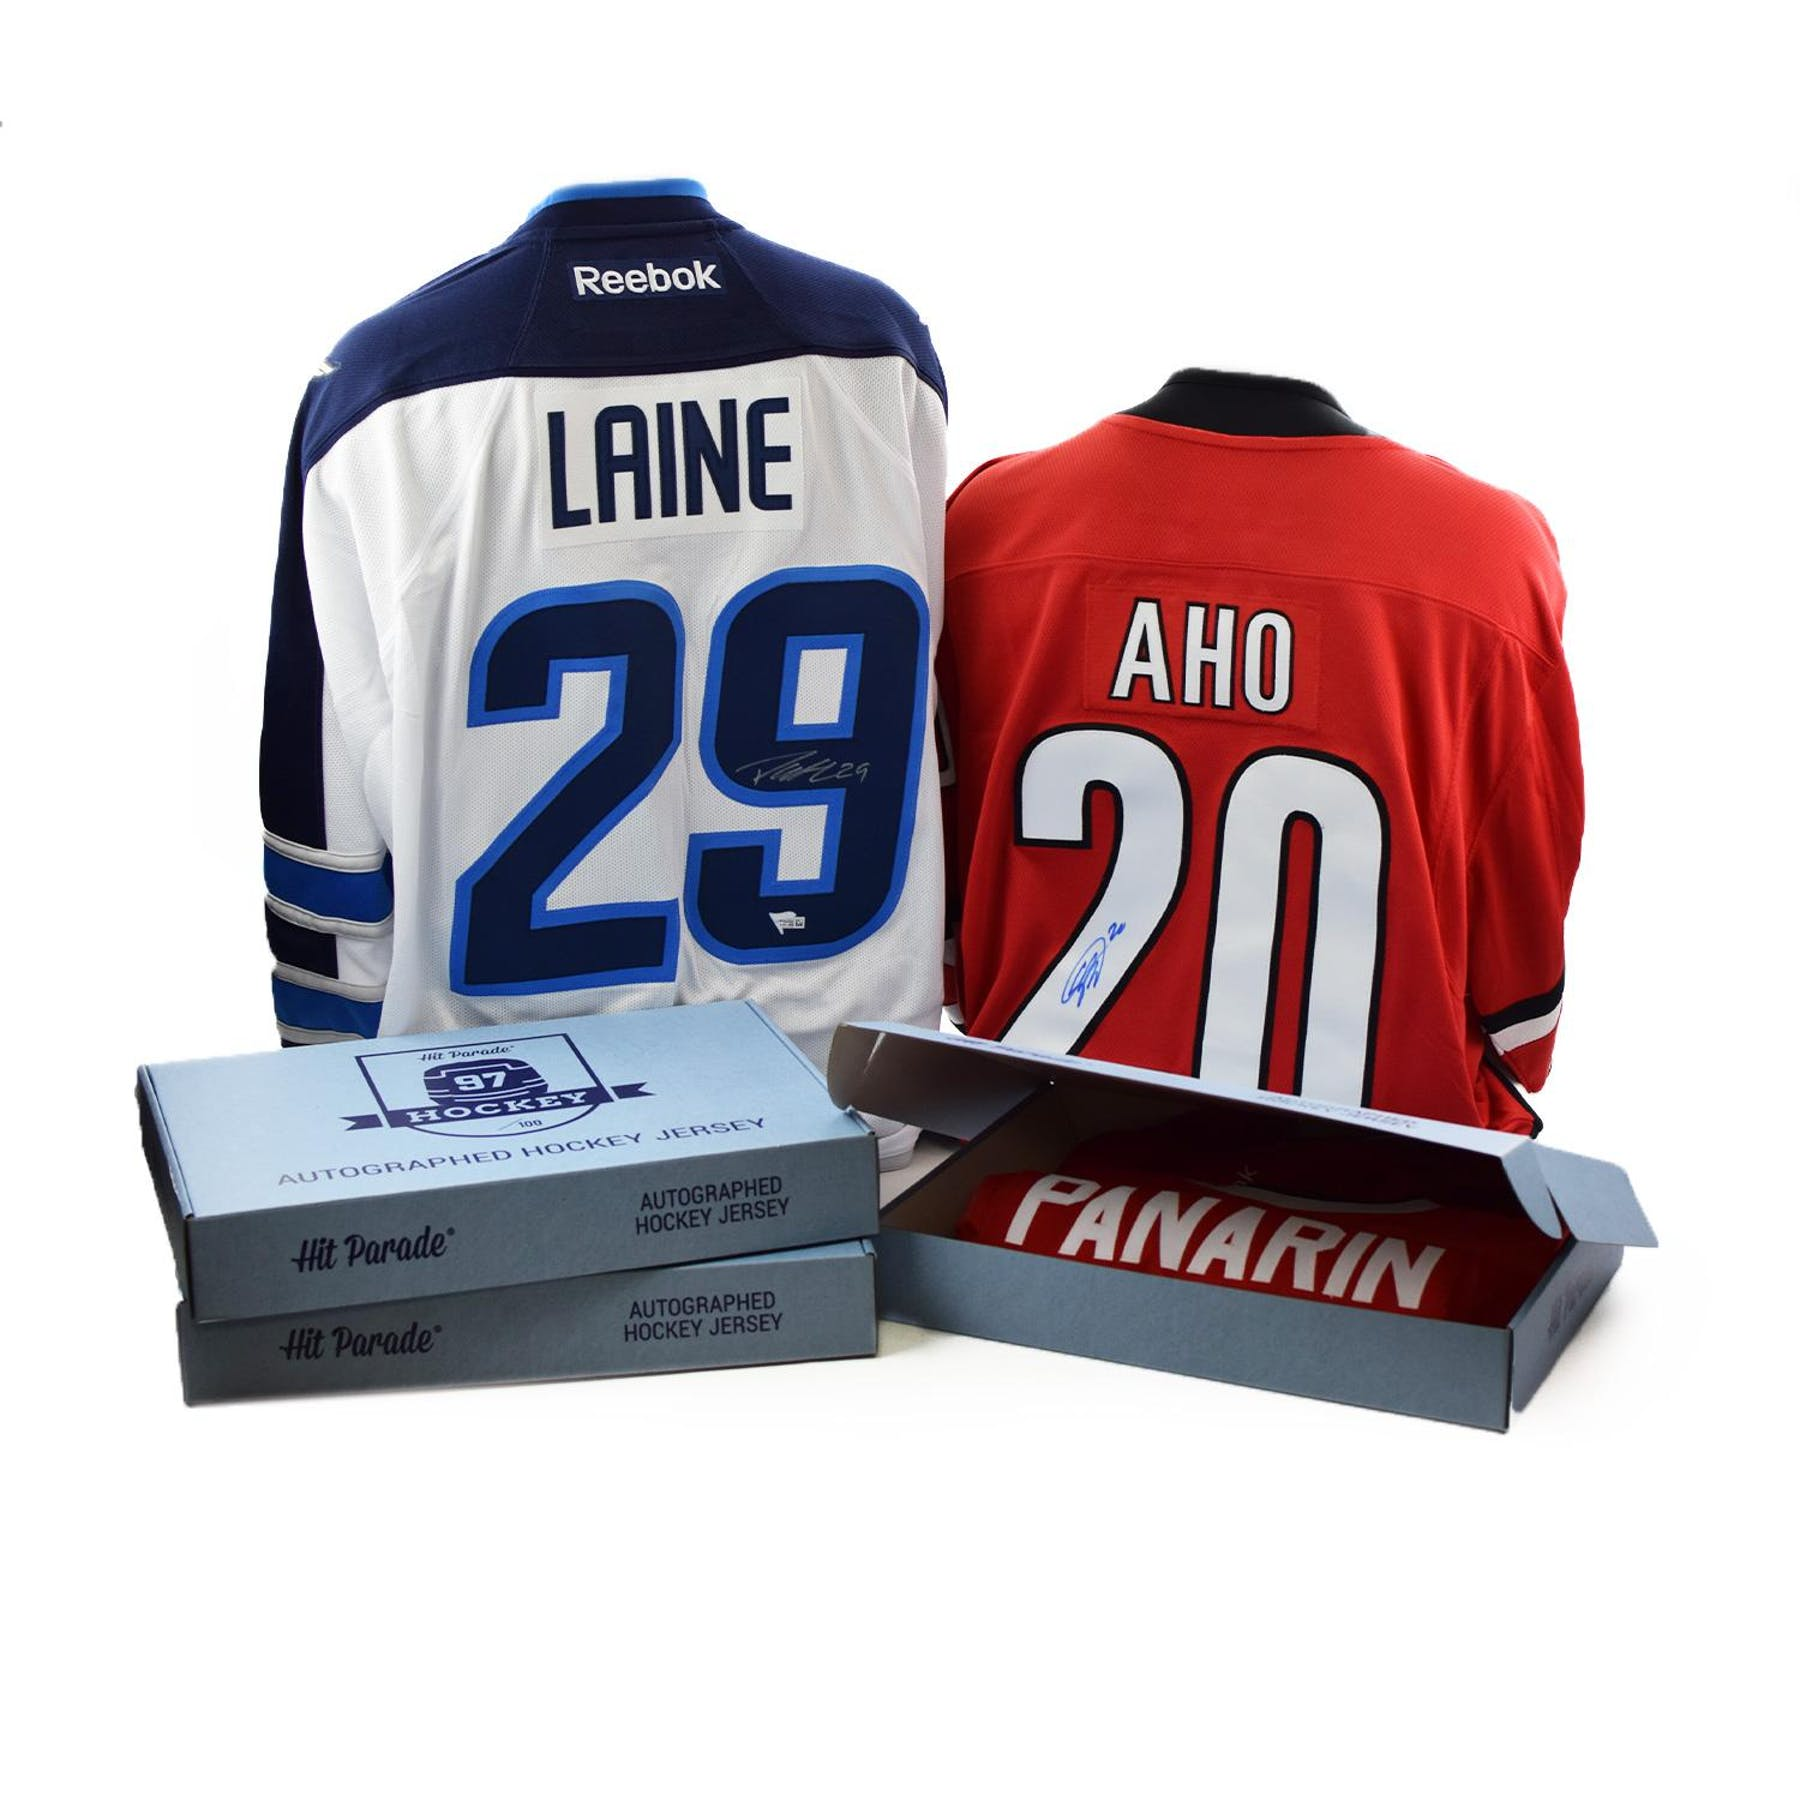 low priced 29e72 9e720 2018/19 Hit Parade Autographed Hockey Jersey Hobby Box - Series 5 - Mario  Lemieux & Mitch Marner!!